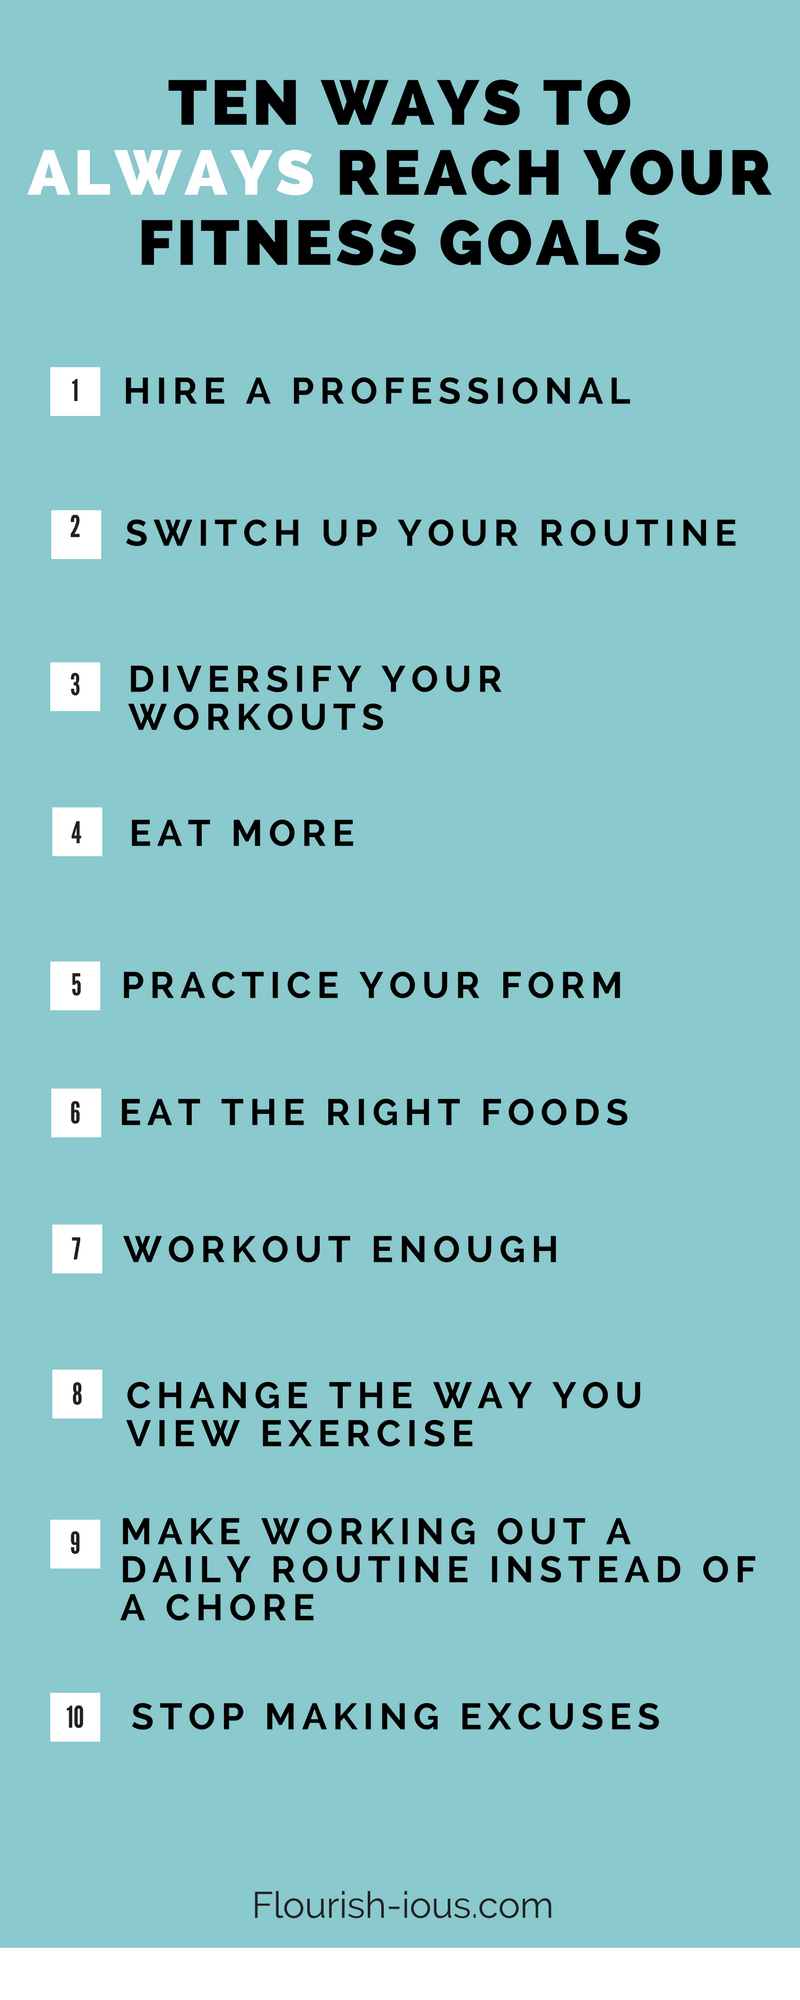 Here's a list of realistic workout ideas to help you have the motivation to challenge your body and reach your personal fitness goals.